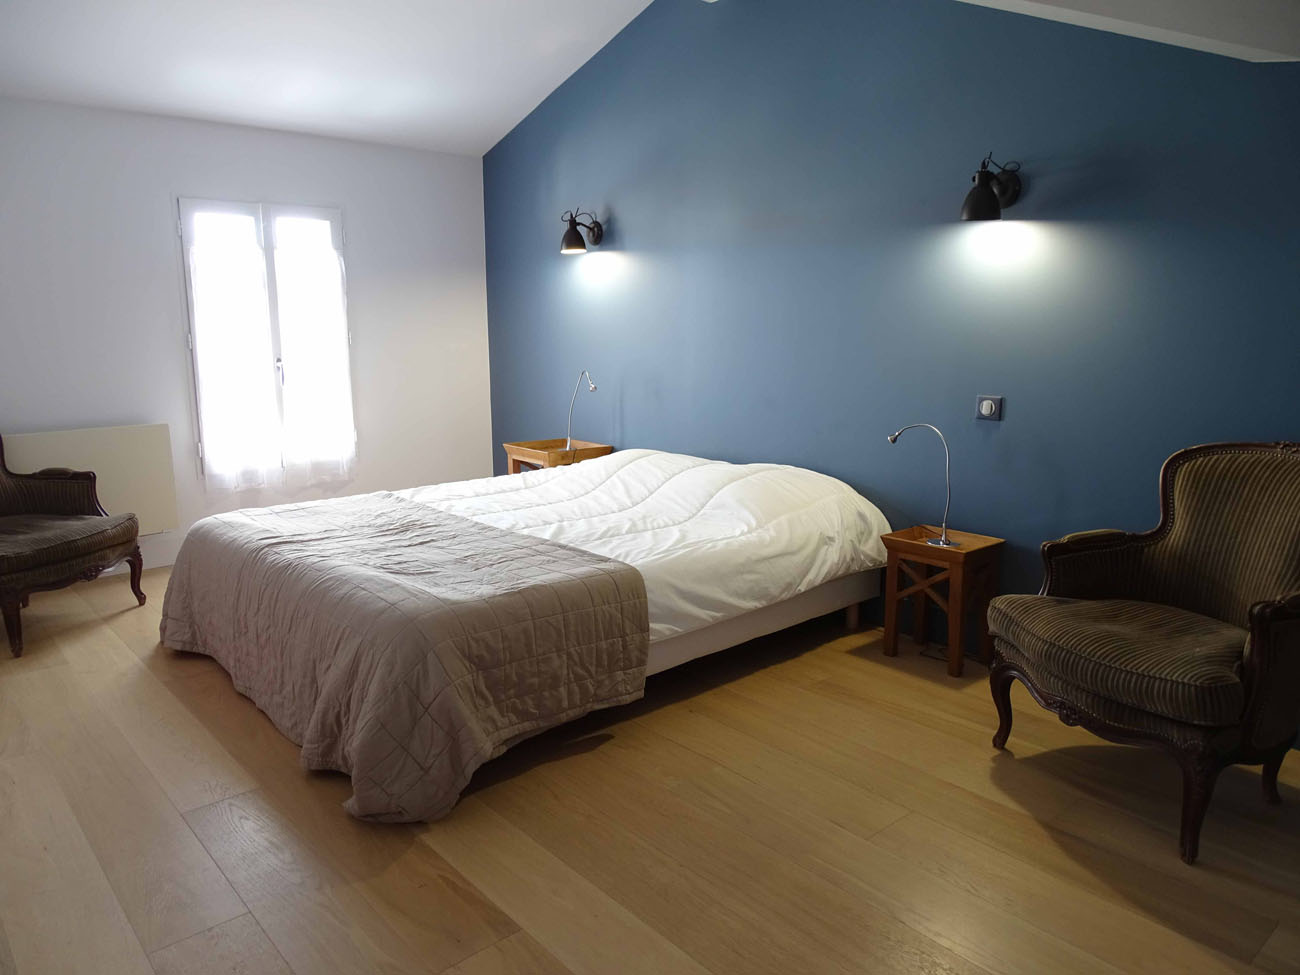 Location Maison Ile de Ré - Bel-Air - Chambre 1